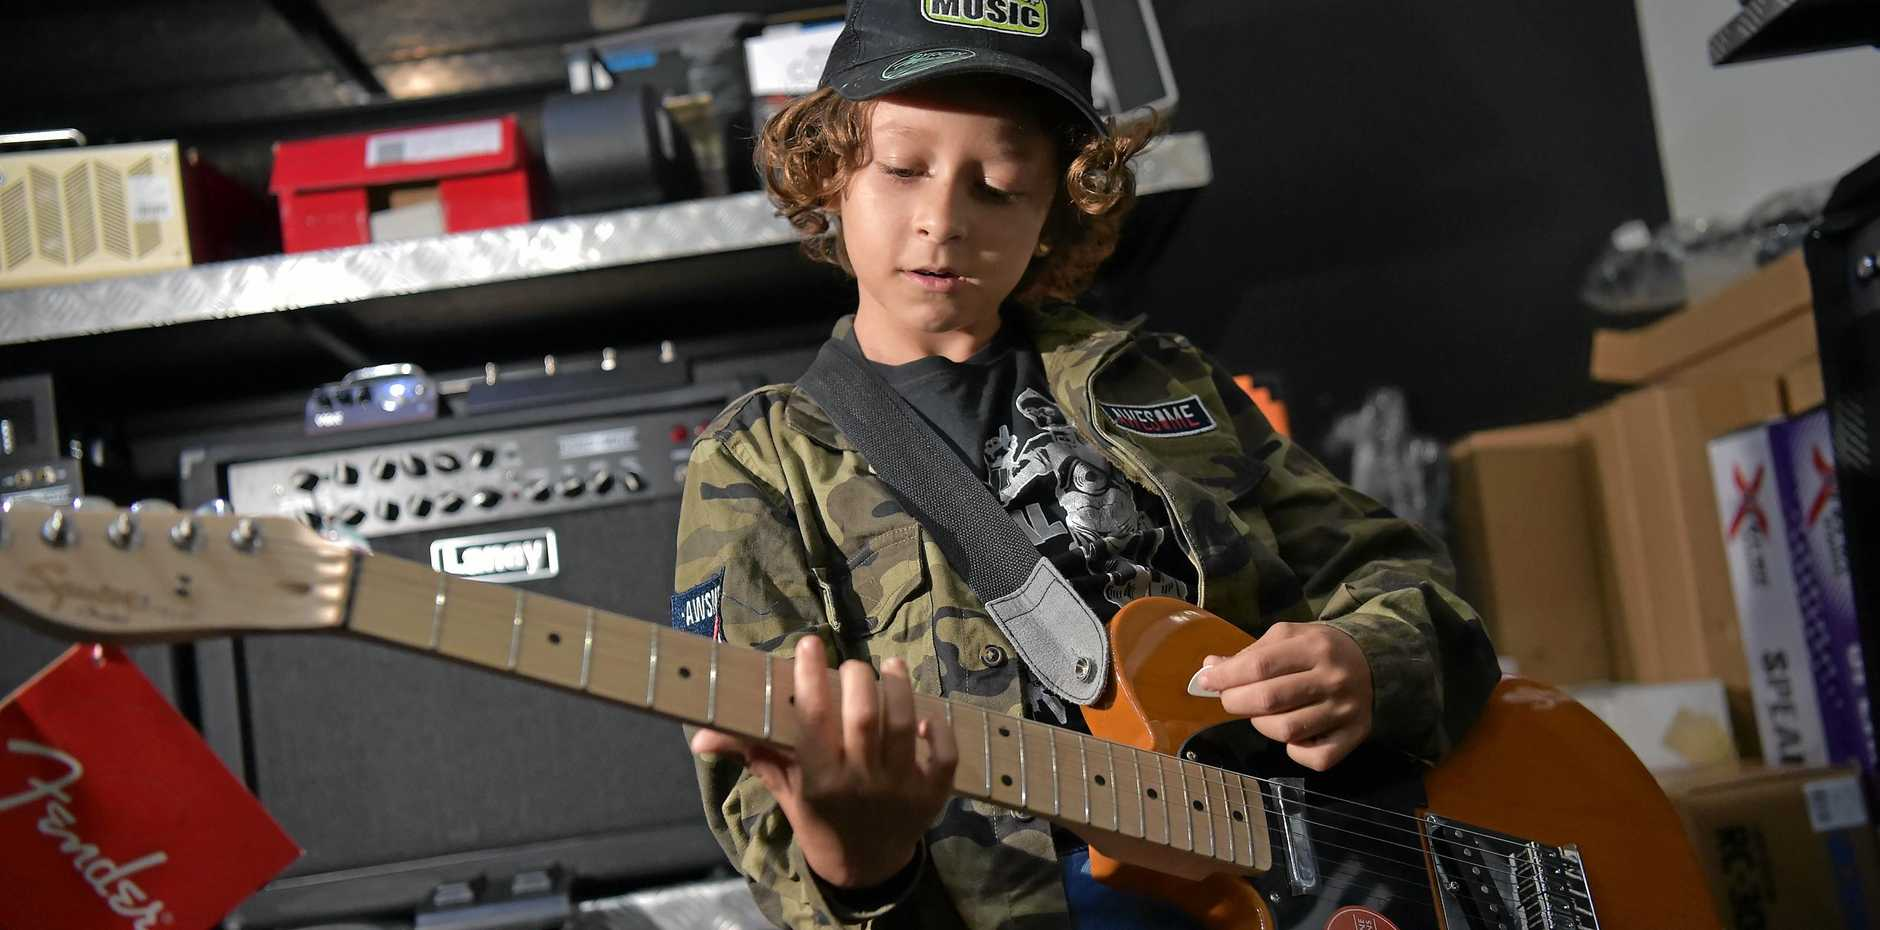 Raiden Macintyre, 10, was able to purchase a new Fender guitar from Shake It Up Music after busking his way to $630 at the Byron Bluesfest.